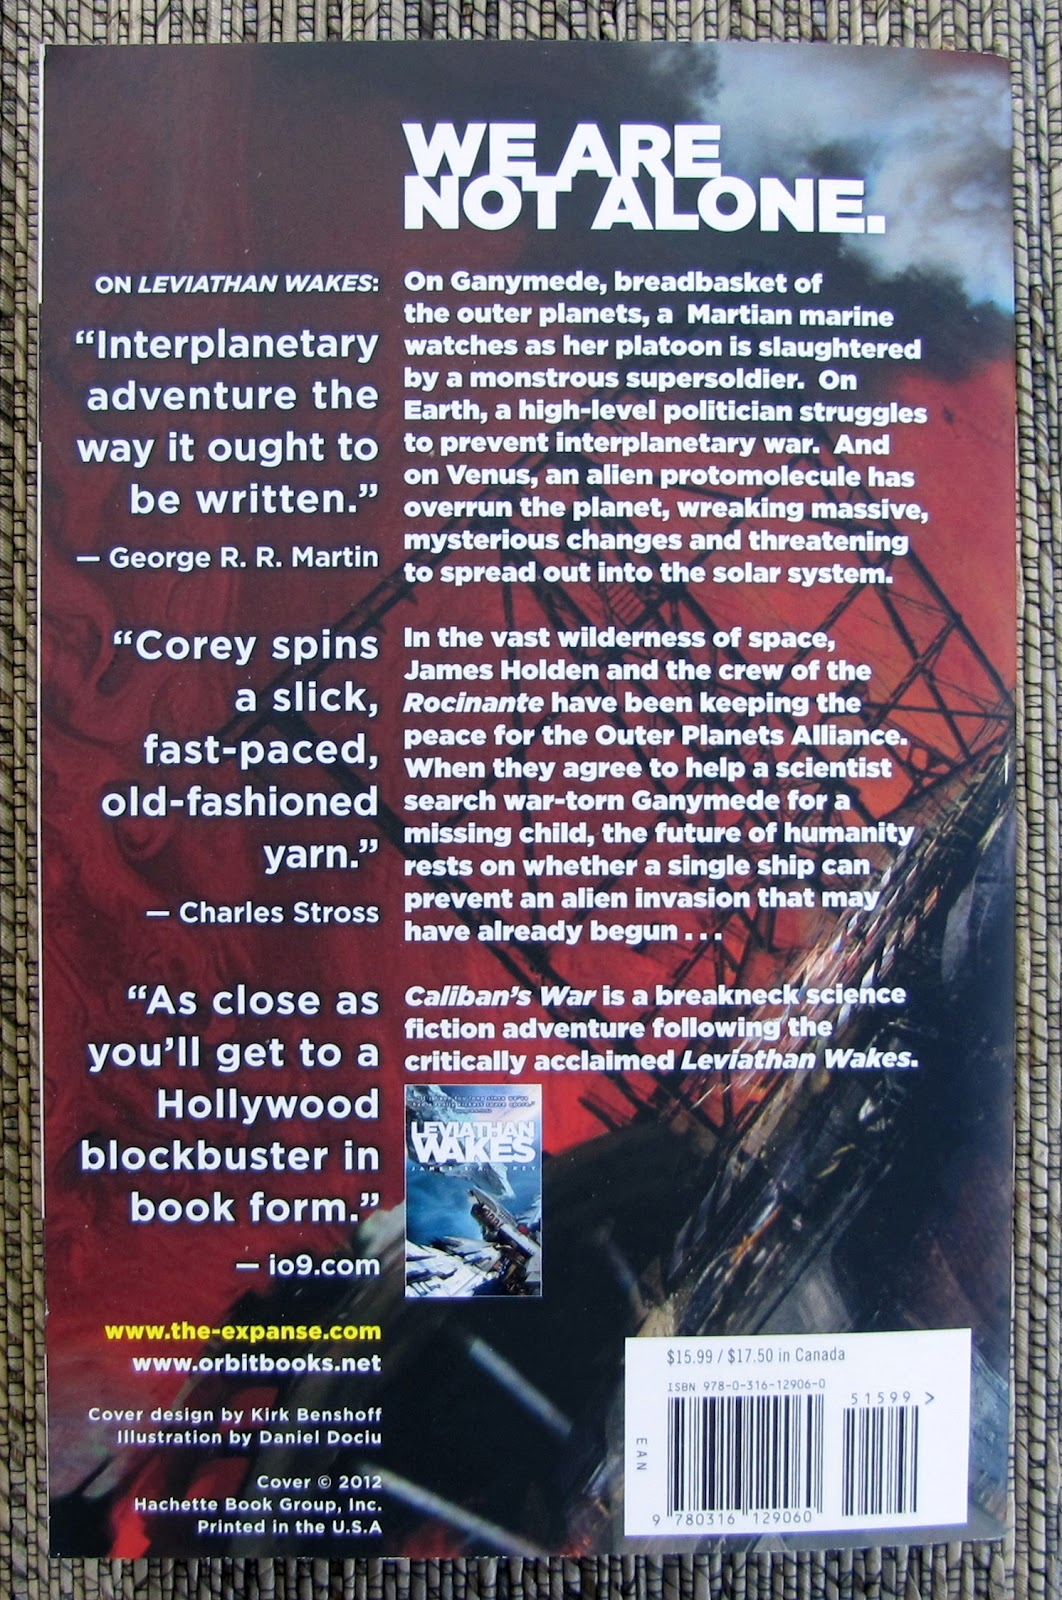 Caliban's War By James S A Corey (actually The Pen Name Of Authors Daniel  Abraham And Ty Franck) Is The Second Book In Their